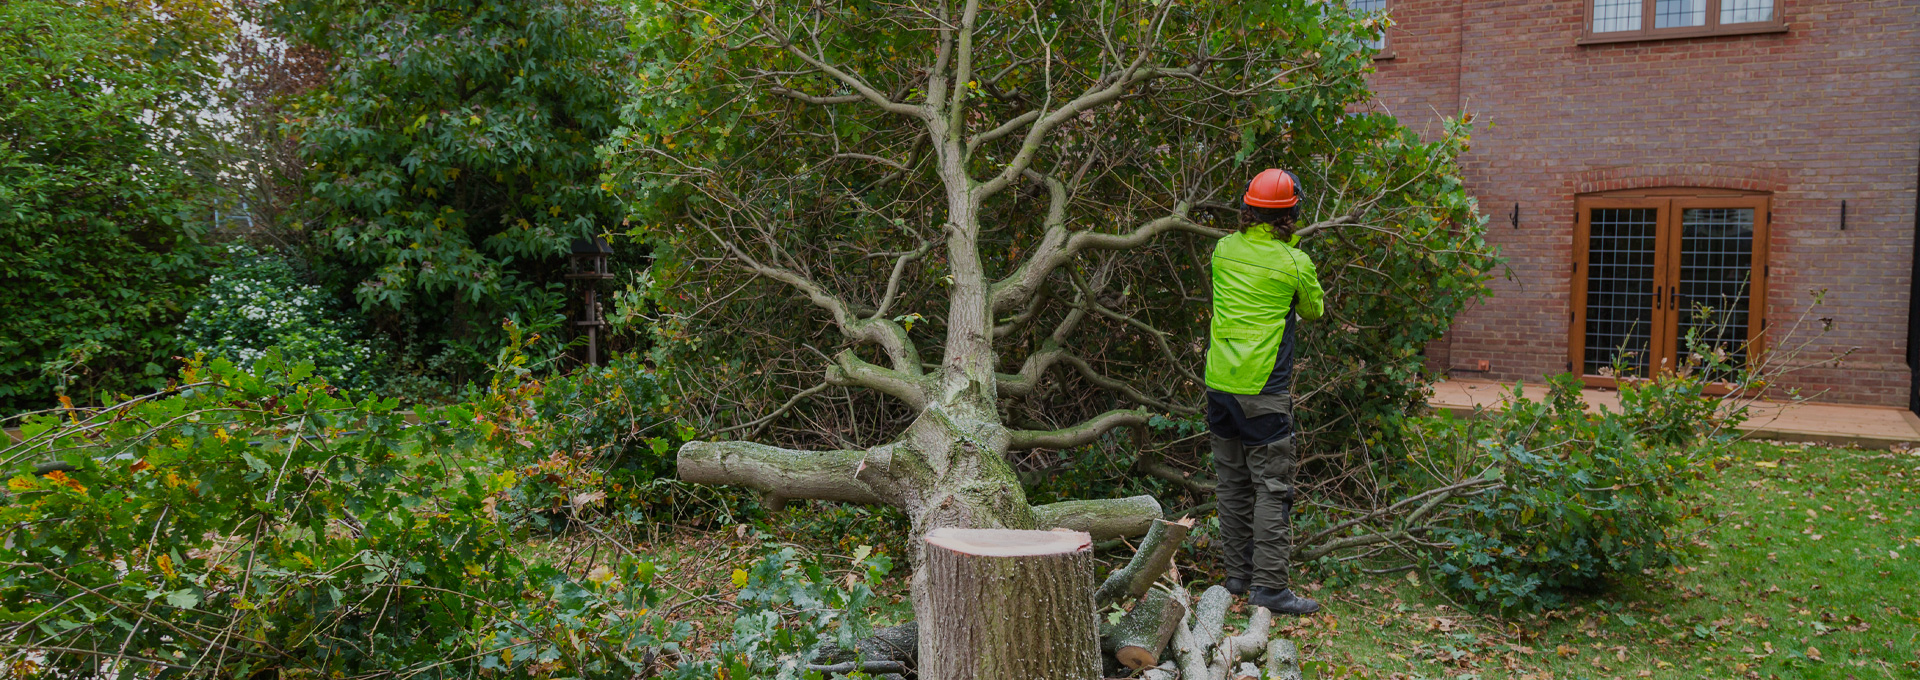 Tree Surgeon from Outback Landscapes captured during cutting the tree.